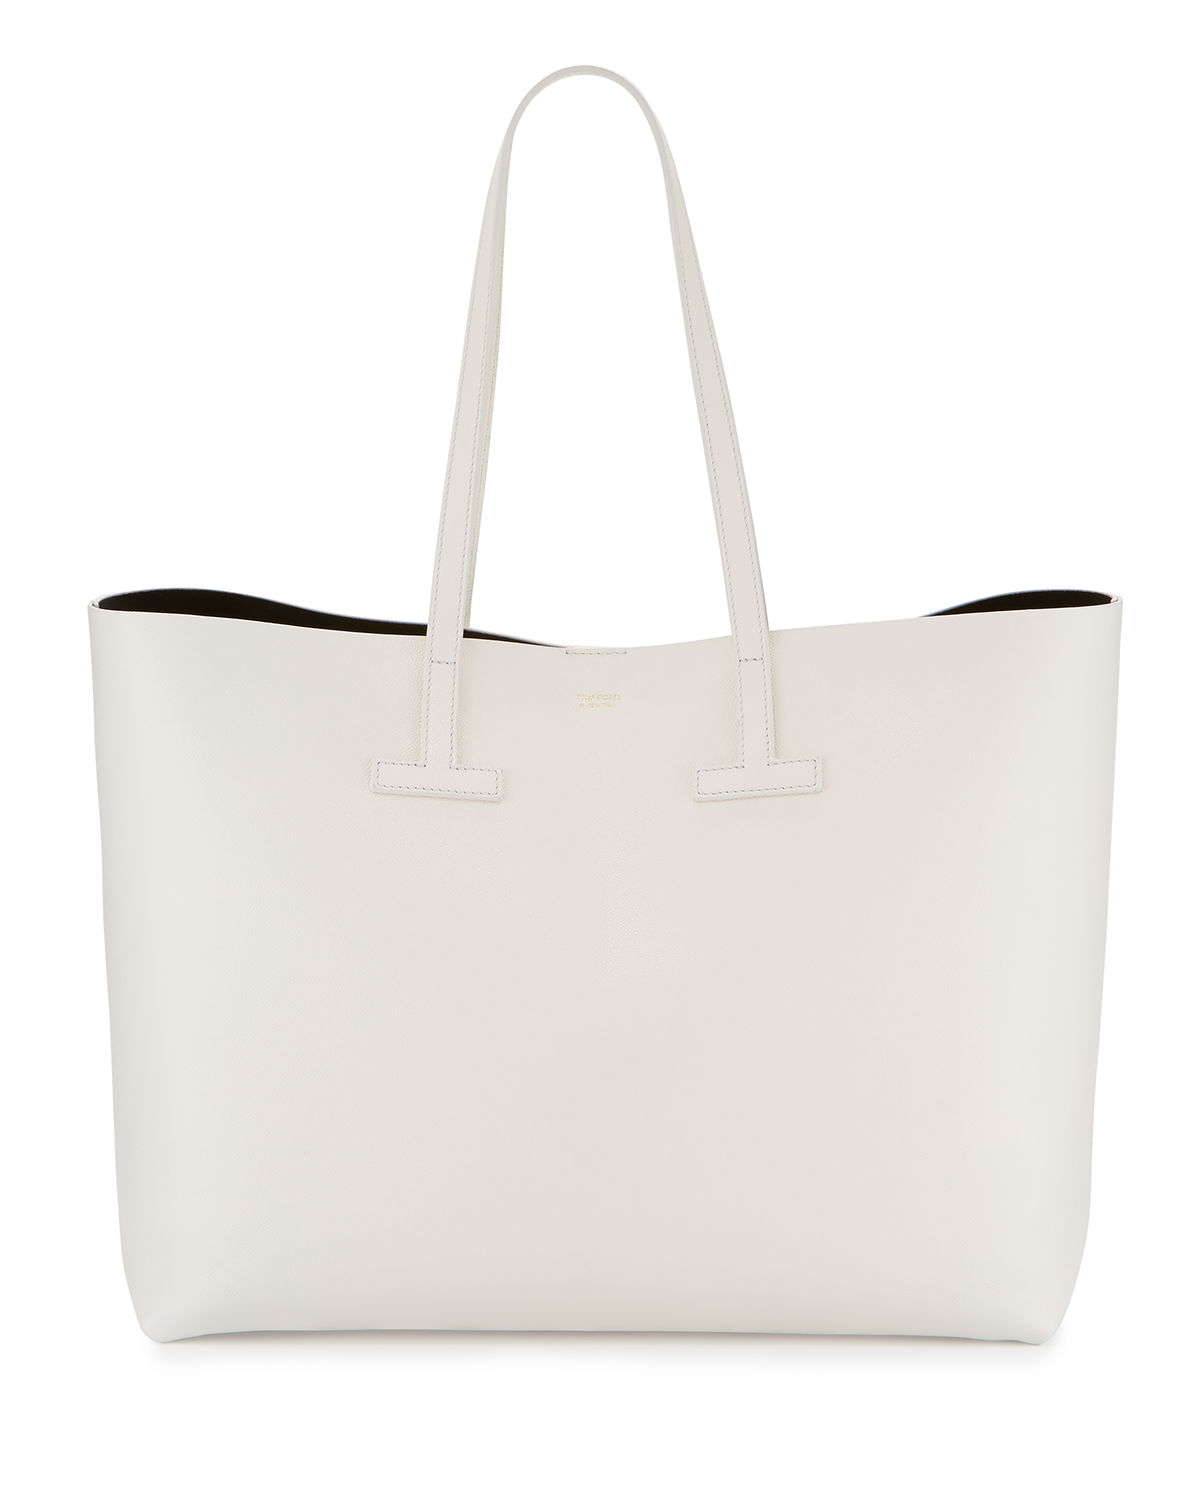 Tom Ford Totes LARGE GRAINED LEATHER T TOTE BAG